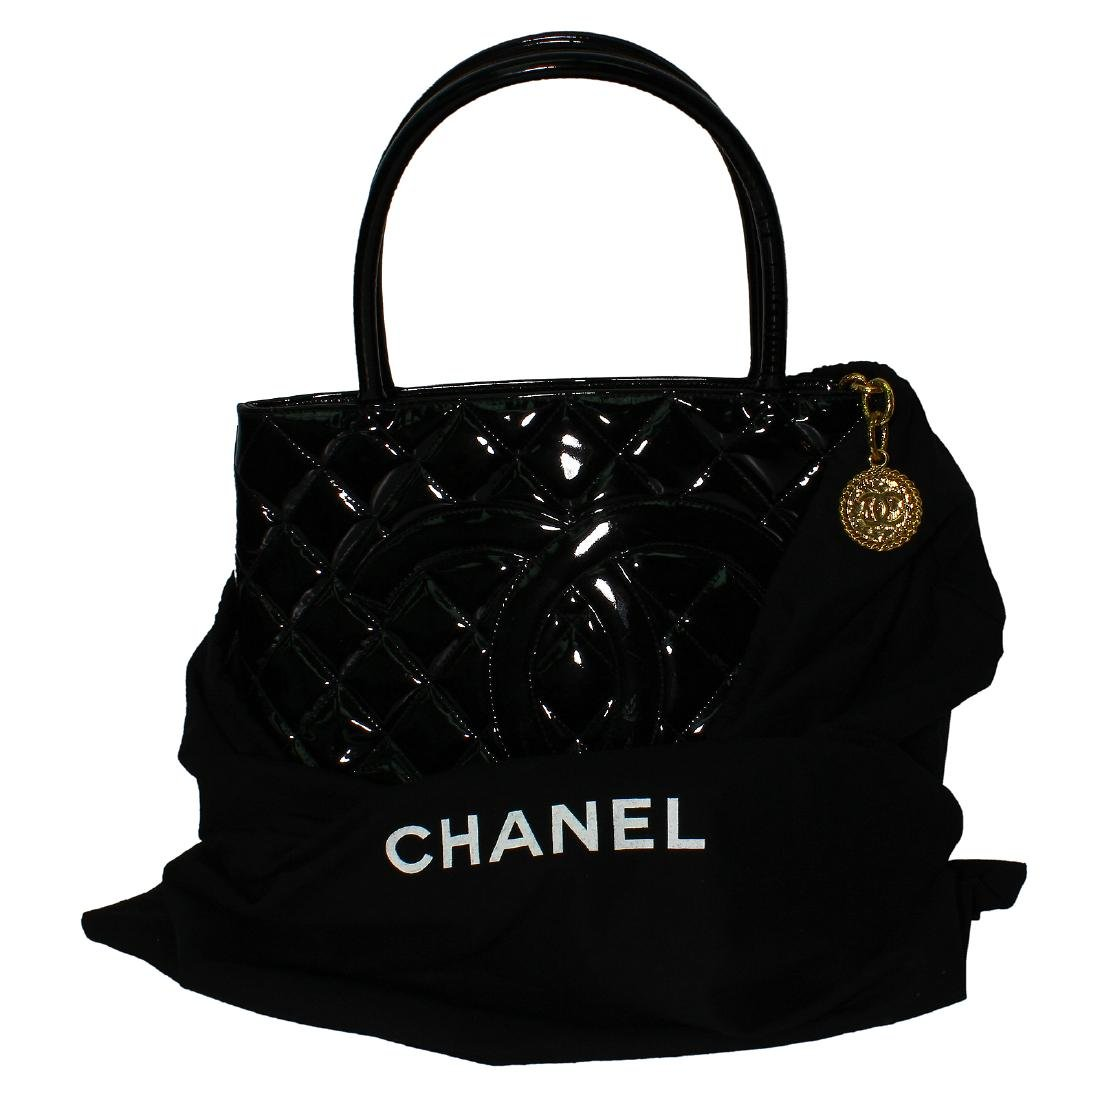 Chanel Quilted Black Patent Leather Shoulder Bag - 2